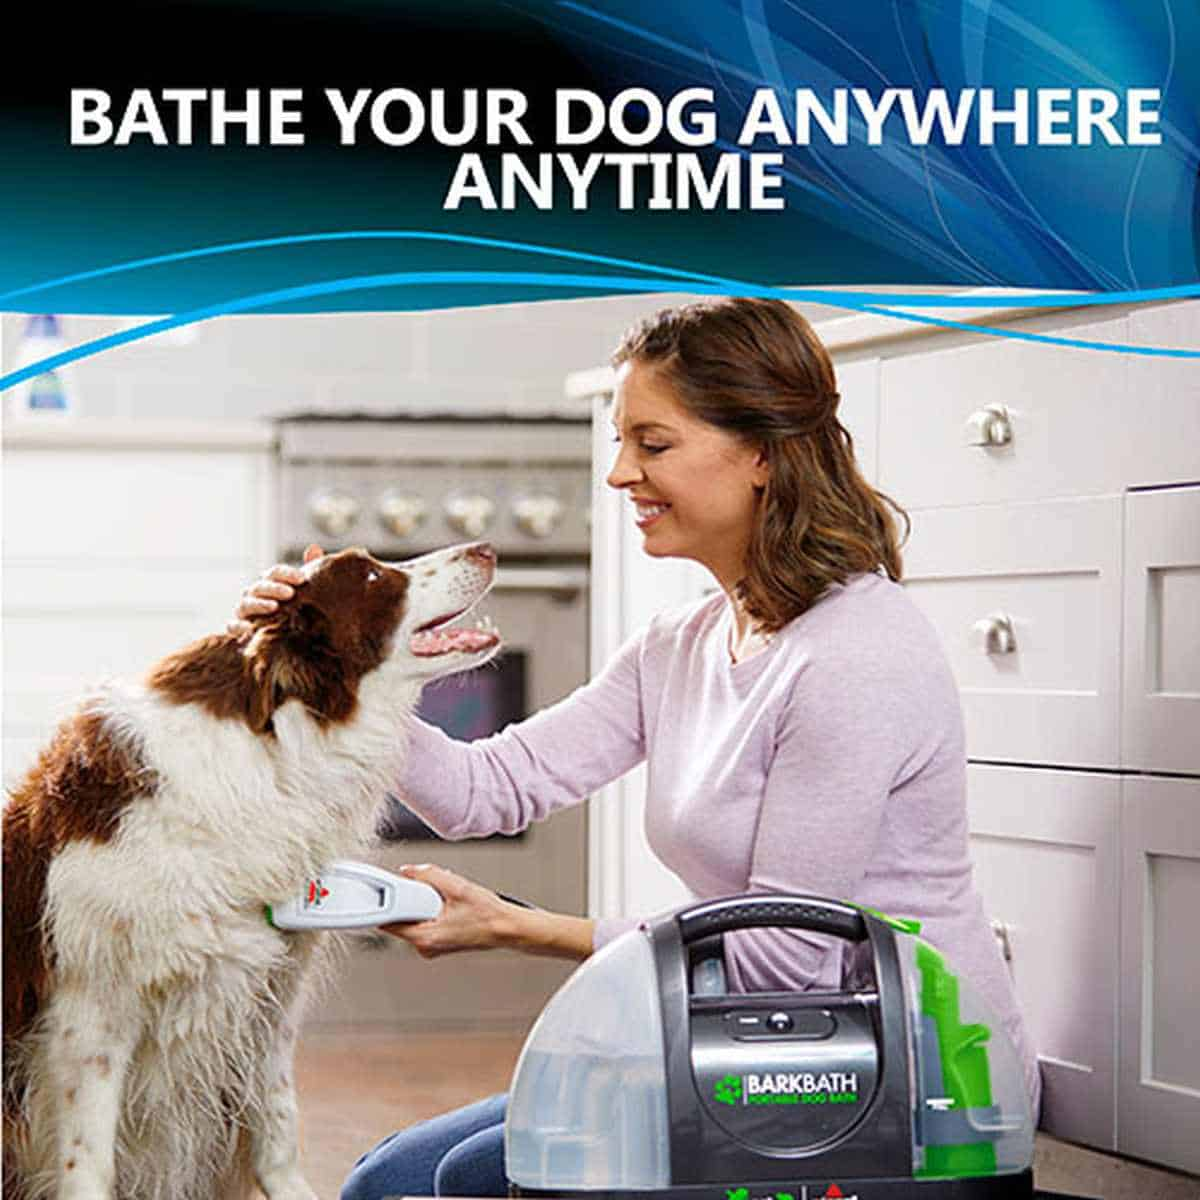 Bissell BARKBATH Portable Dog Bath and Grooming System | Must-Have Pet Tech For Your Cats and Dogs